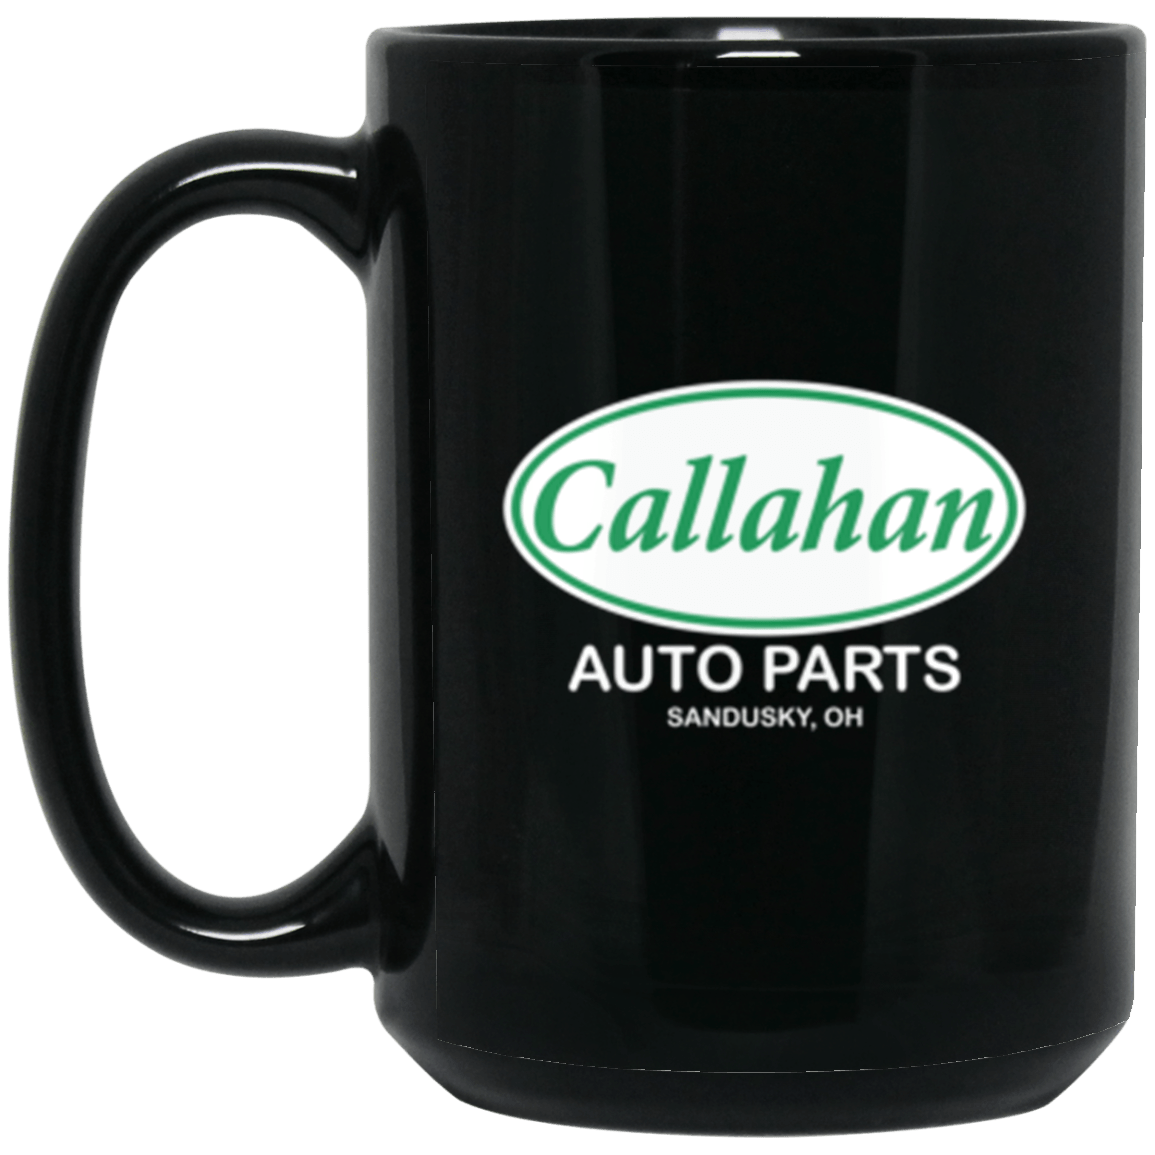 Callahan Auto Black Mug 15oz (2-sided)